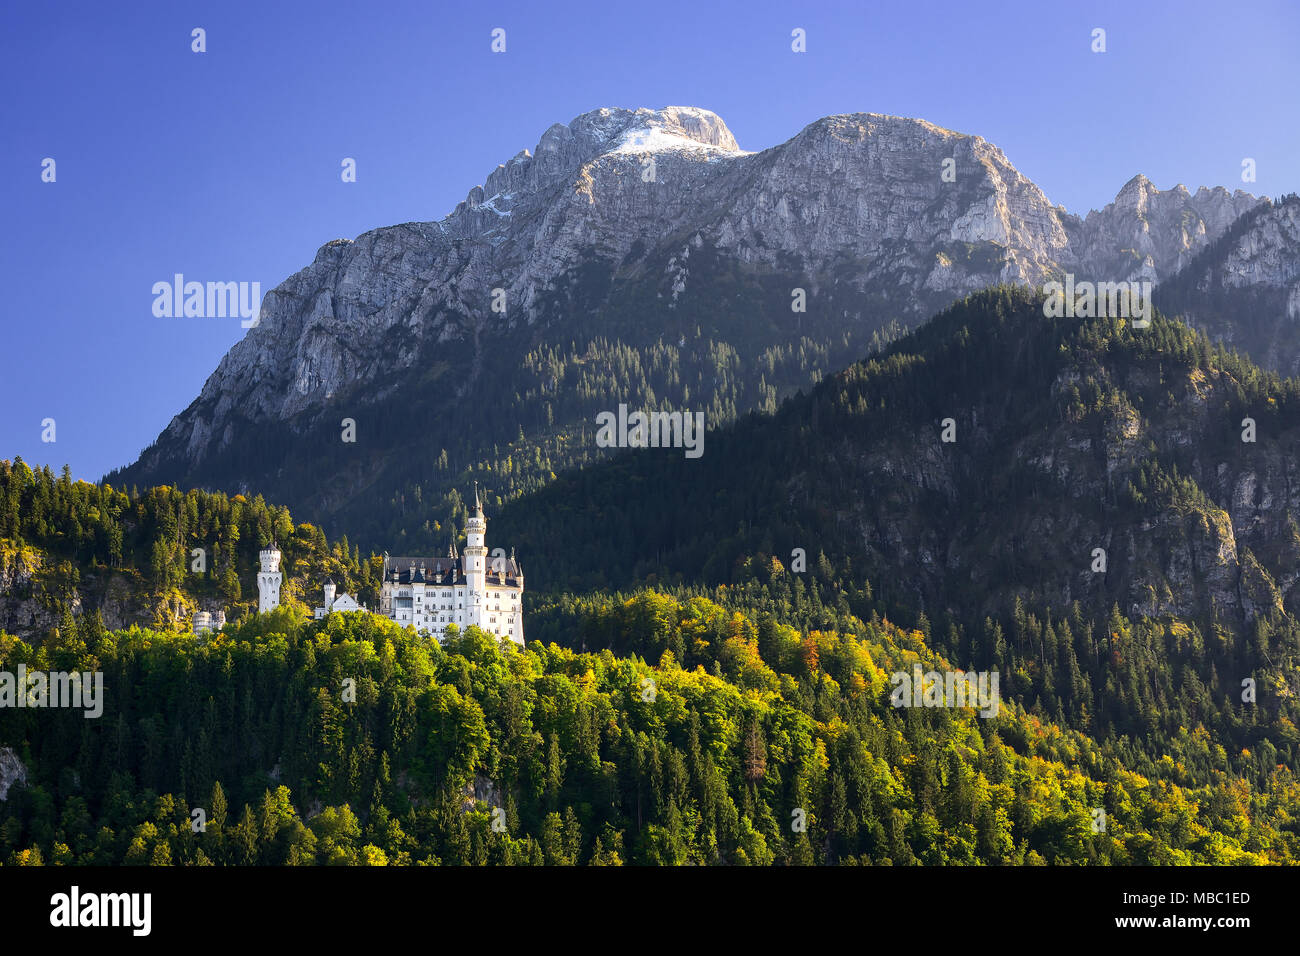 Beautiful Neuschwanstein Castle with scenic mountain landscape near Fussen, Bavaria, Germany - Stock Image